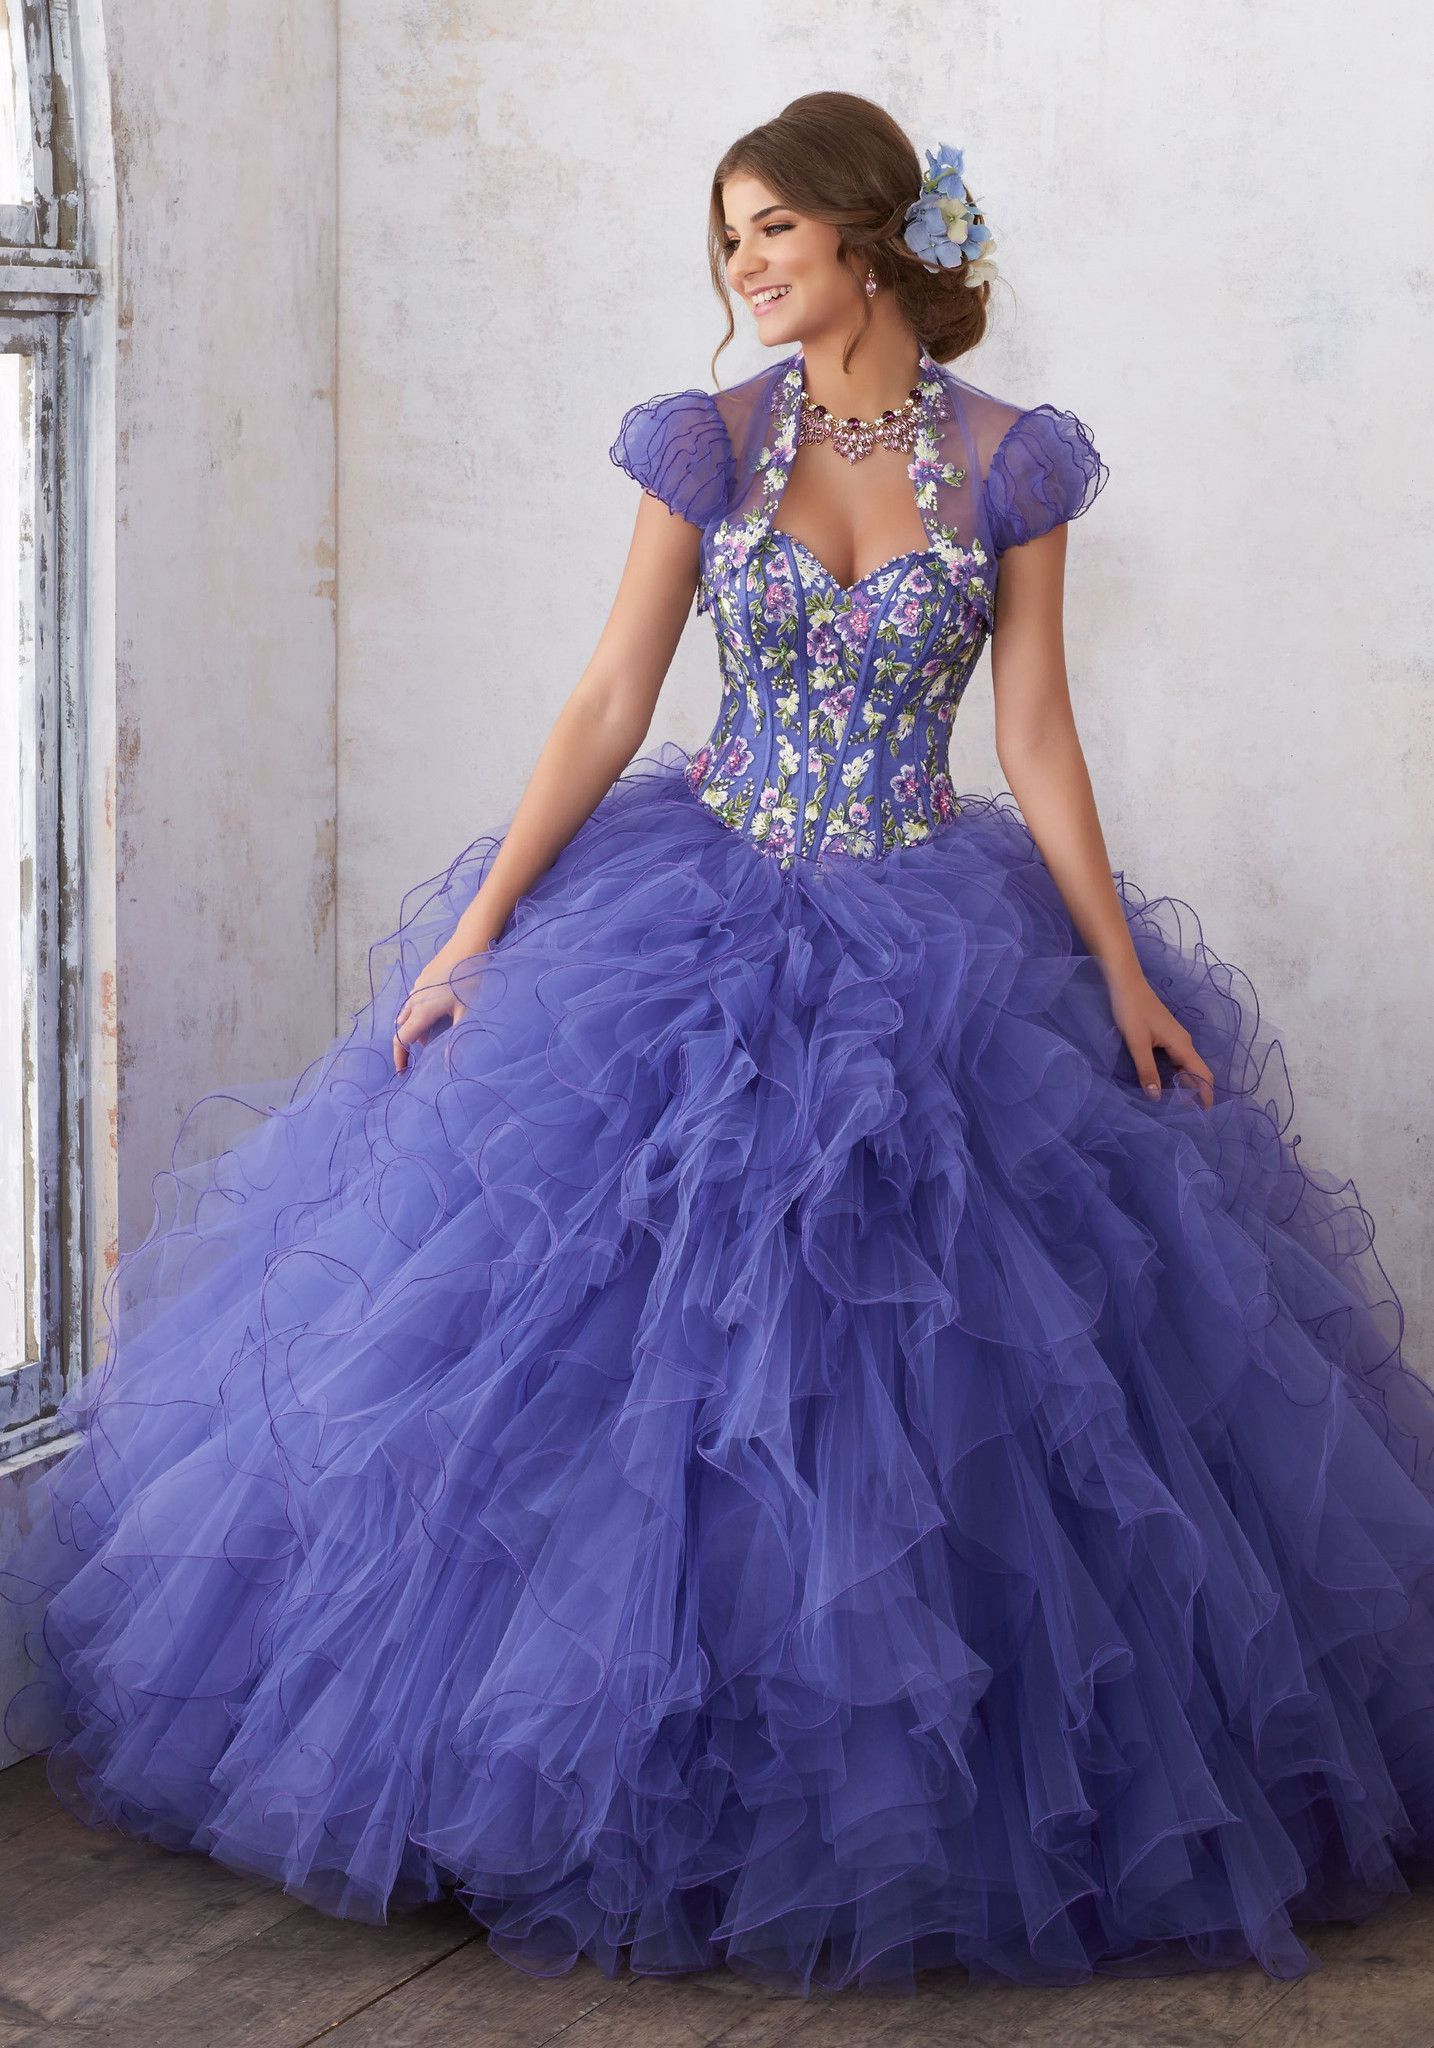 Mori Lee Quinceanera Dress 89121 | Mori lee, Sweet 15 and Products